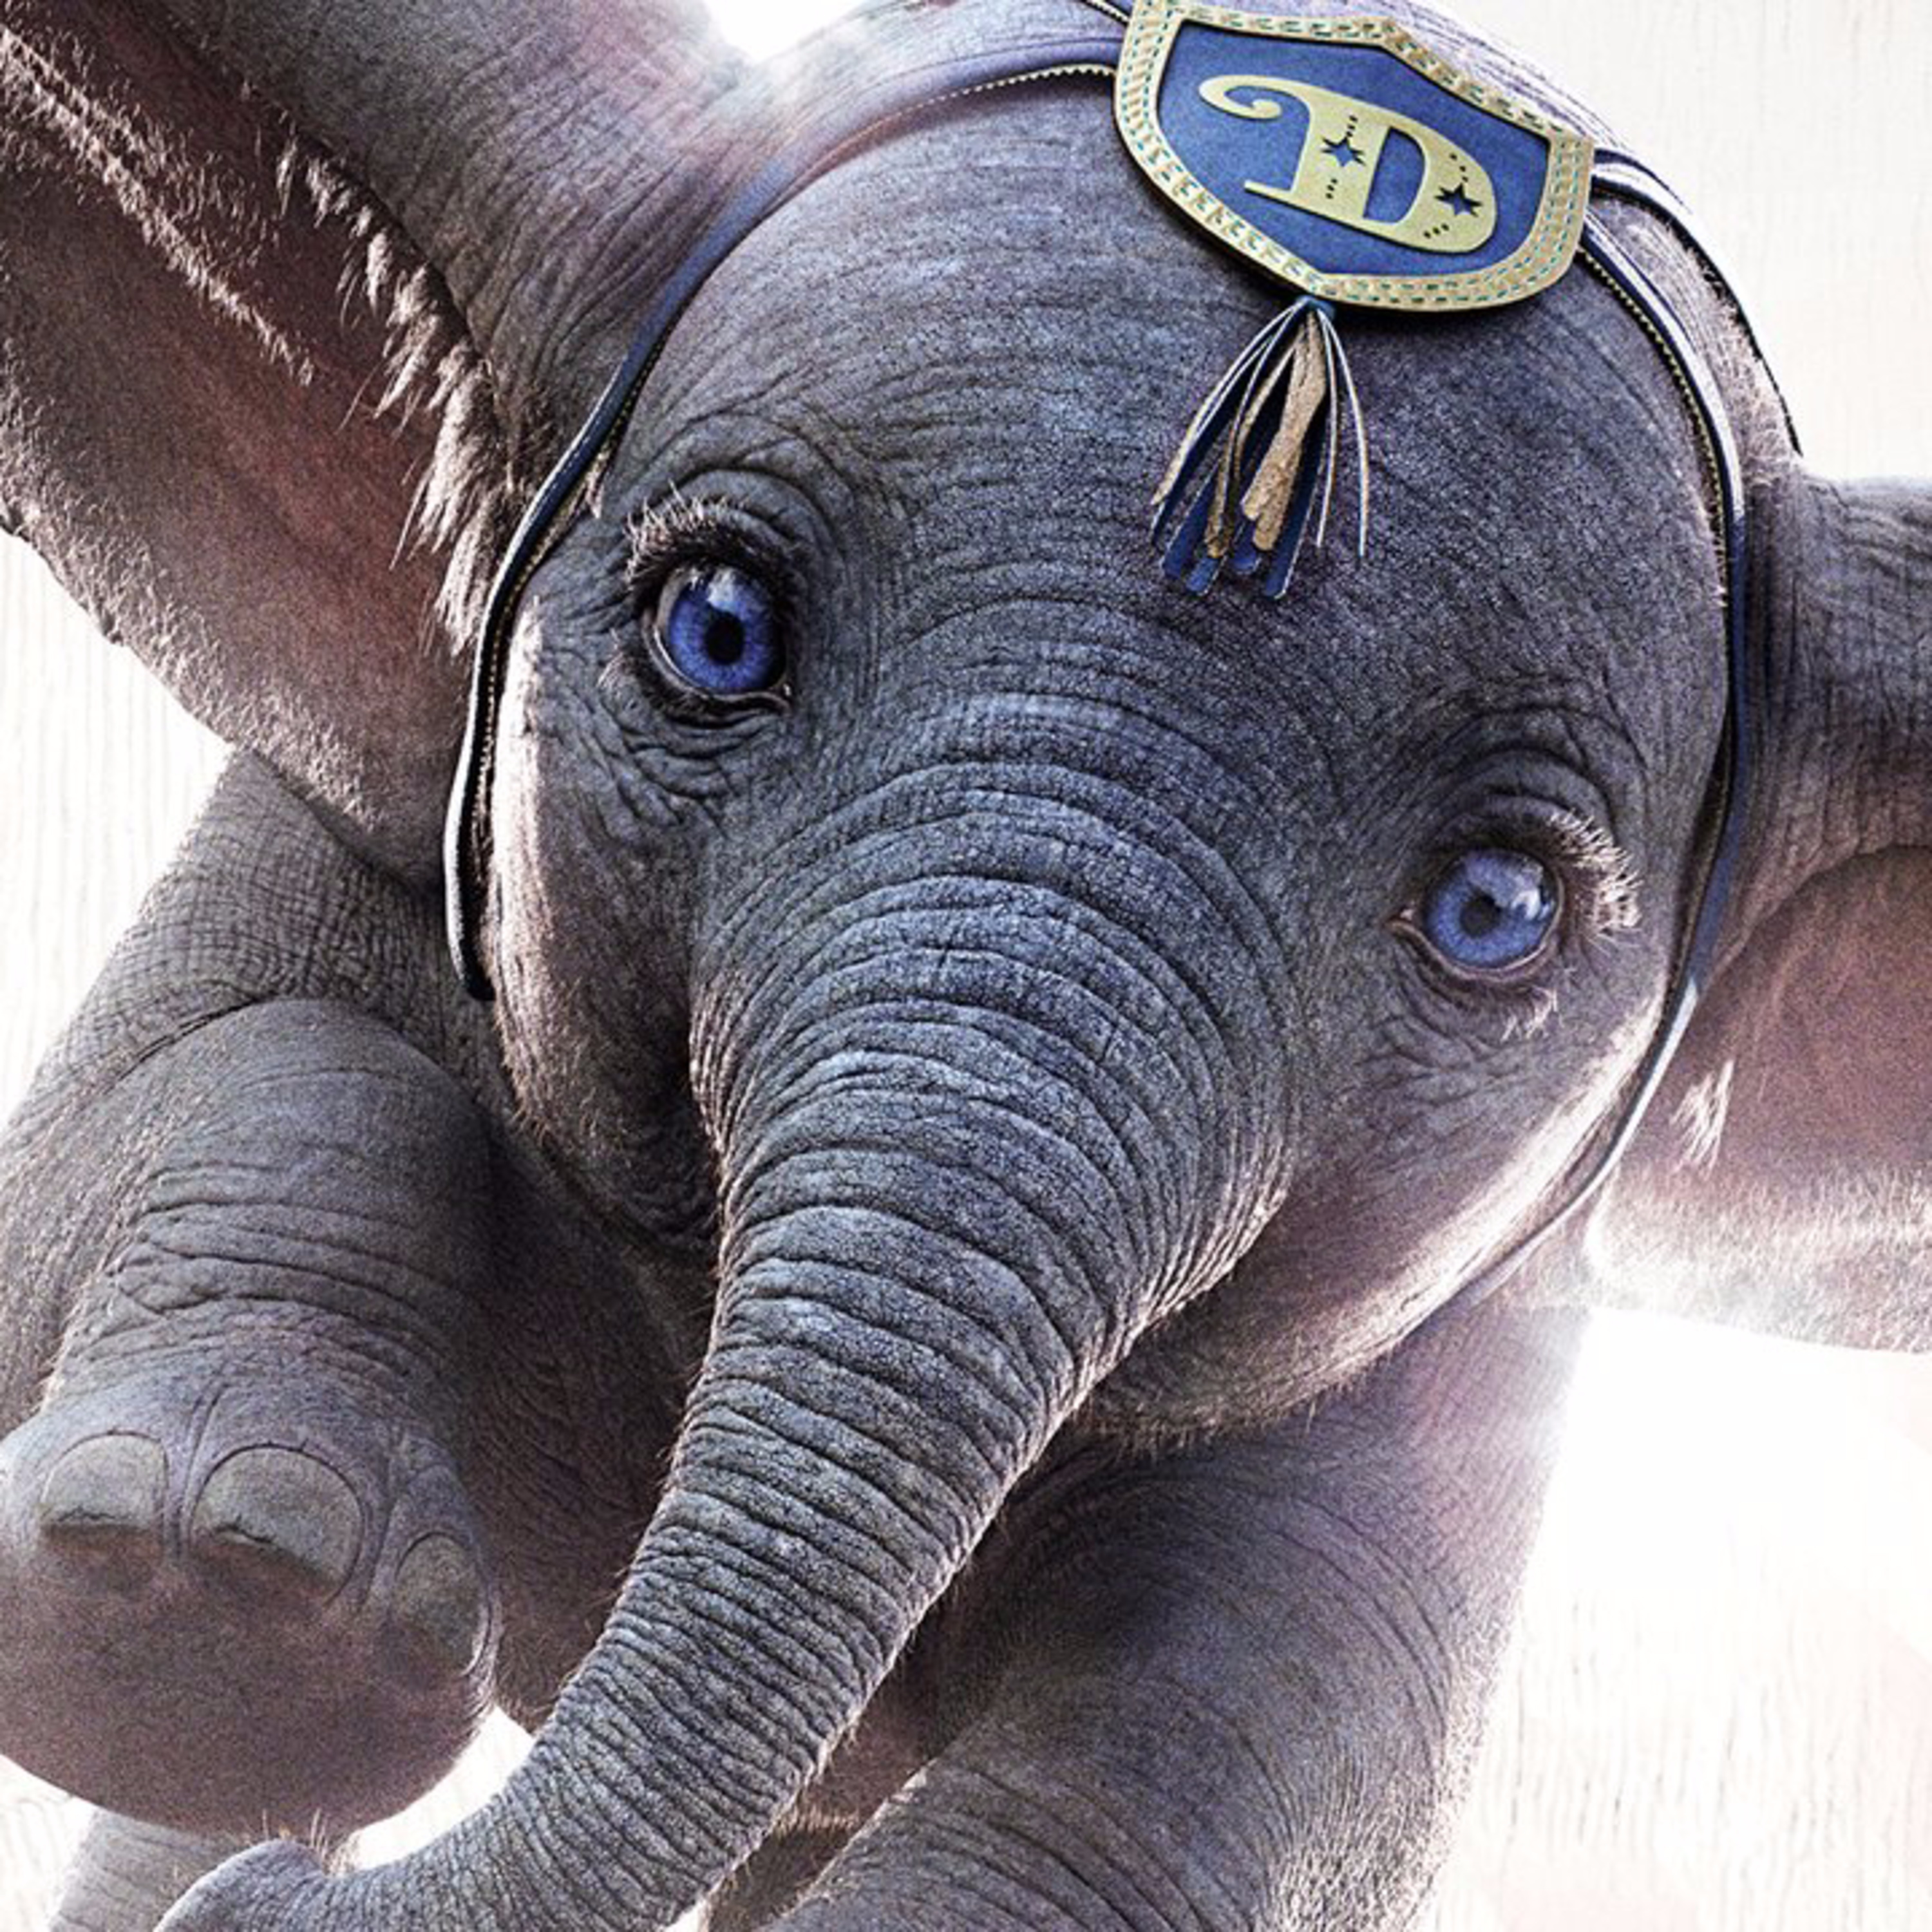 Dumbo 2019 Date Night Movie Podcast Podcast Podtail